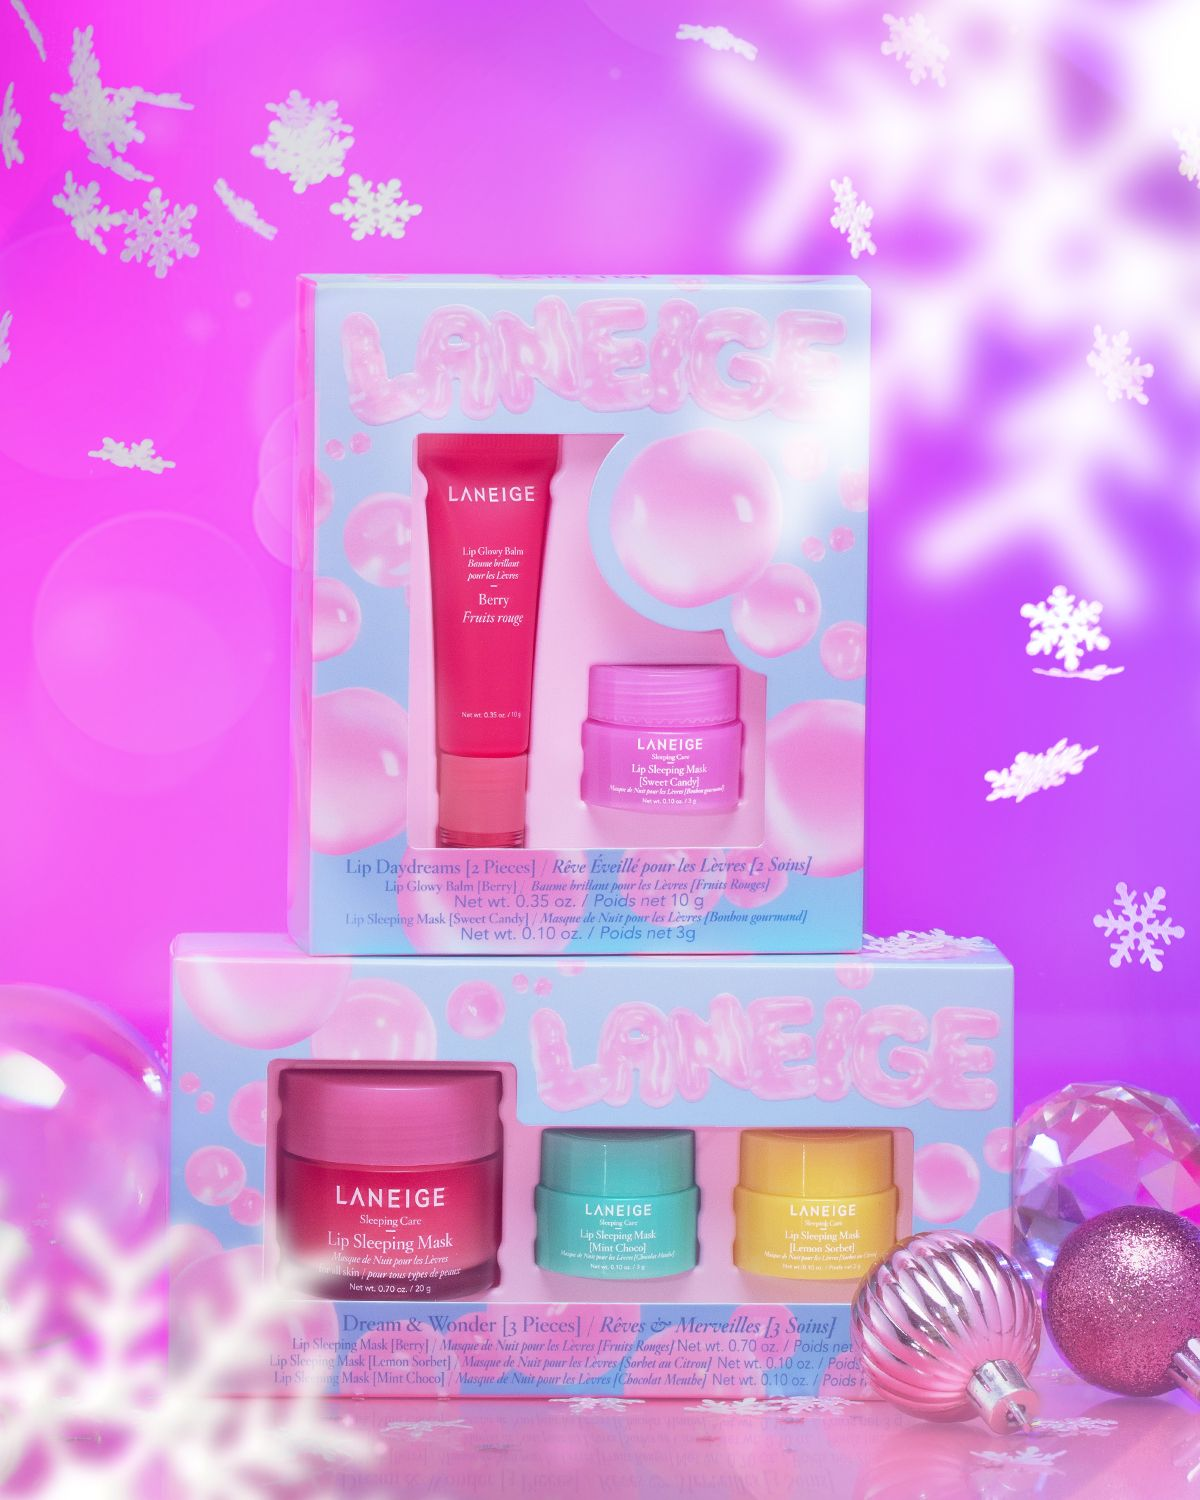 Its Snowing Laneige Holiday Sets In 2020 Gift Set Effective Skin Care Products Skin Care Kit